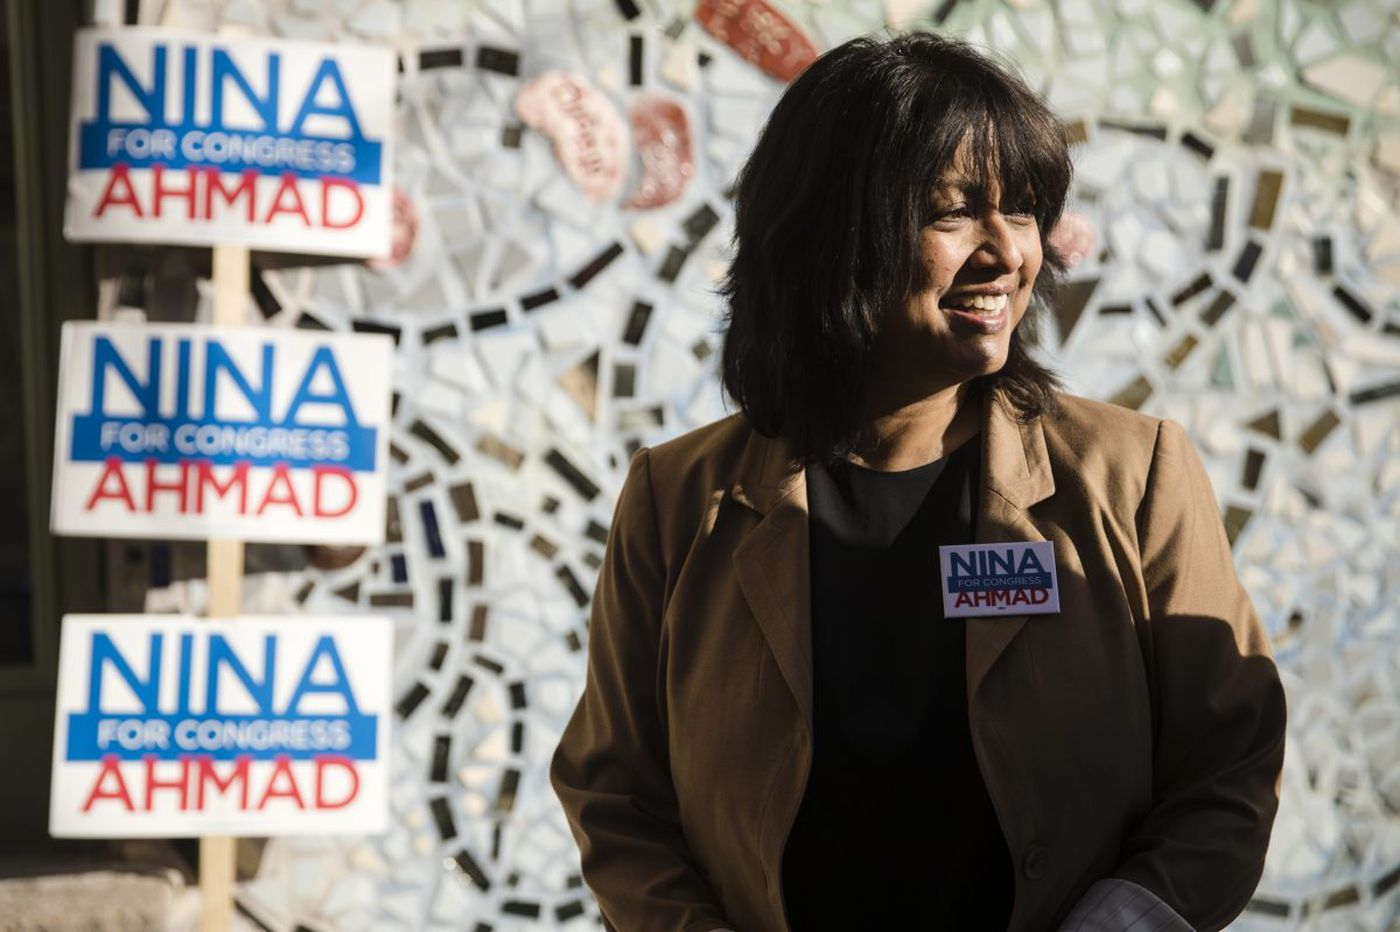 Former Philly deputy mayor Nina Ahmad wins Democratic primary for Pennsylvania auditor general